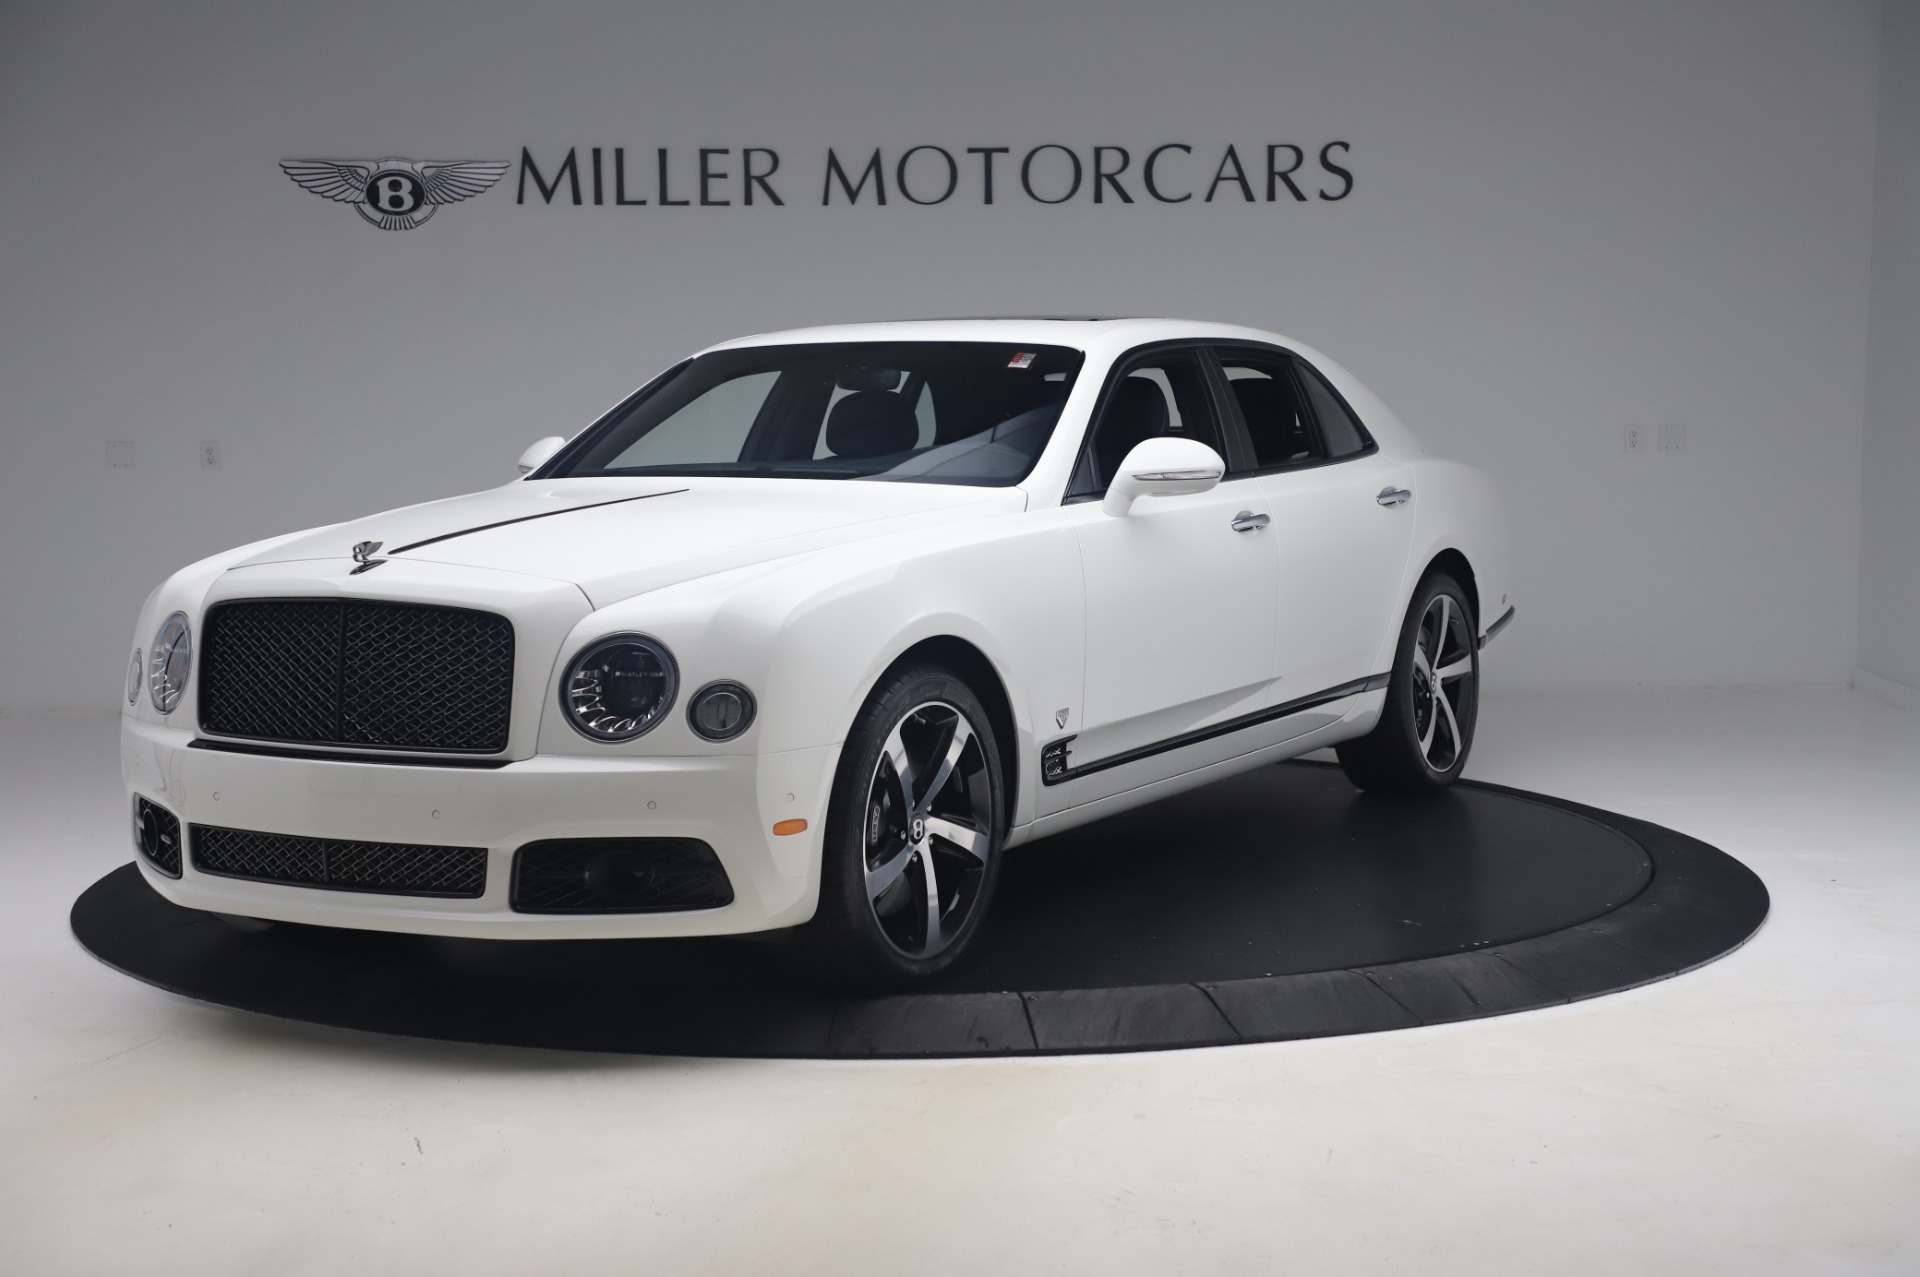 New 2020 Bentley Mulsanne 6.75 Edition by Mulliner for sale $423,065 at Bugatti of Greenwich in Greenwich CT 06830 1